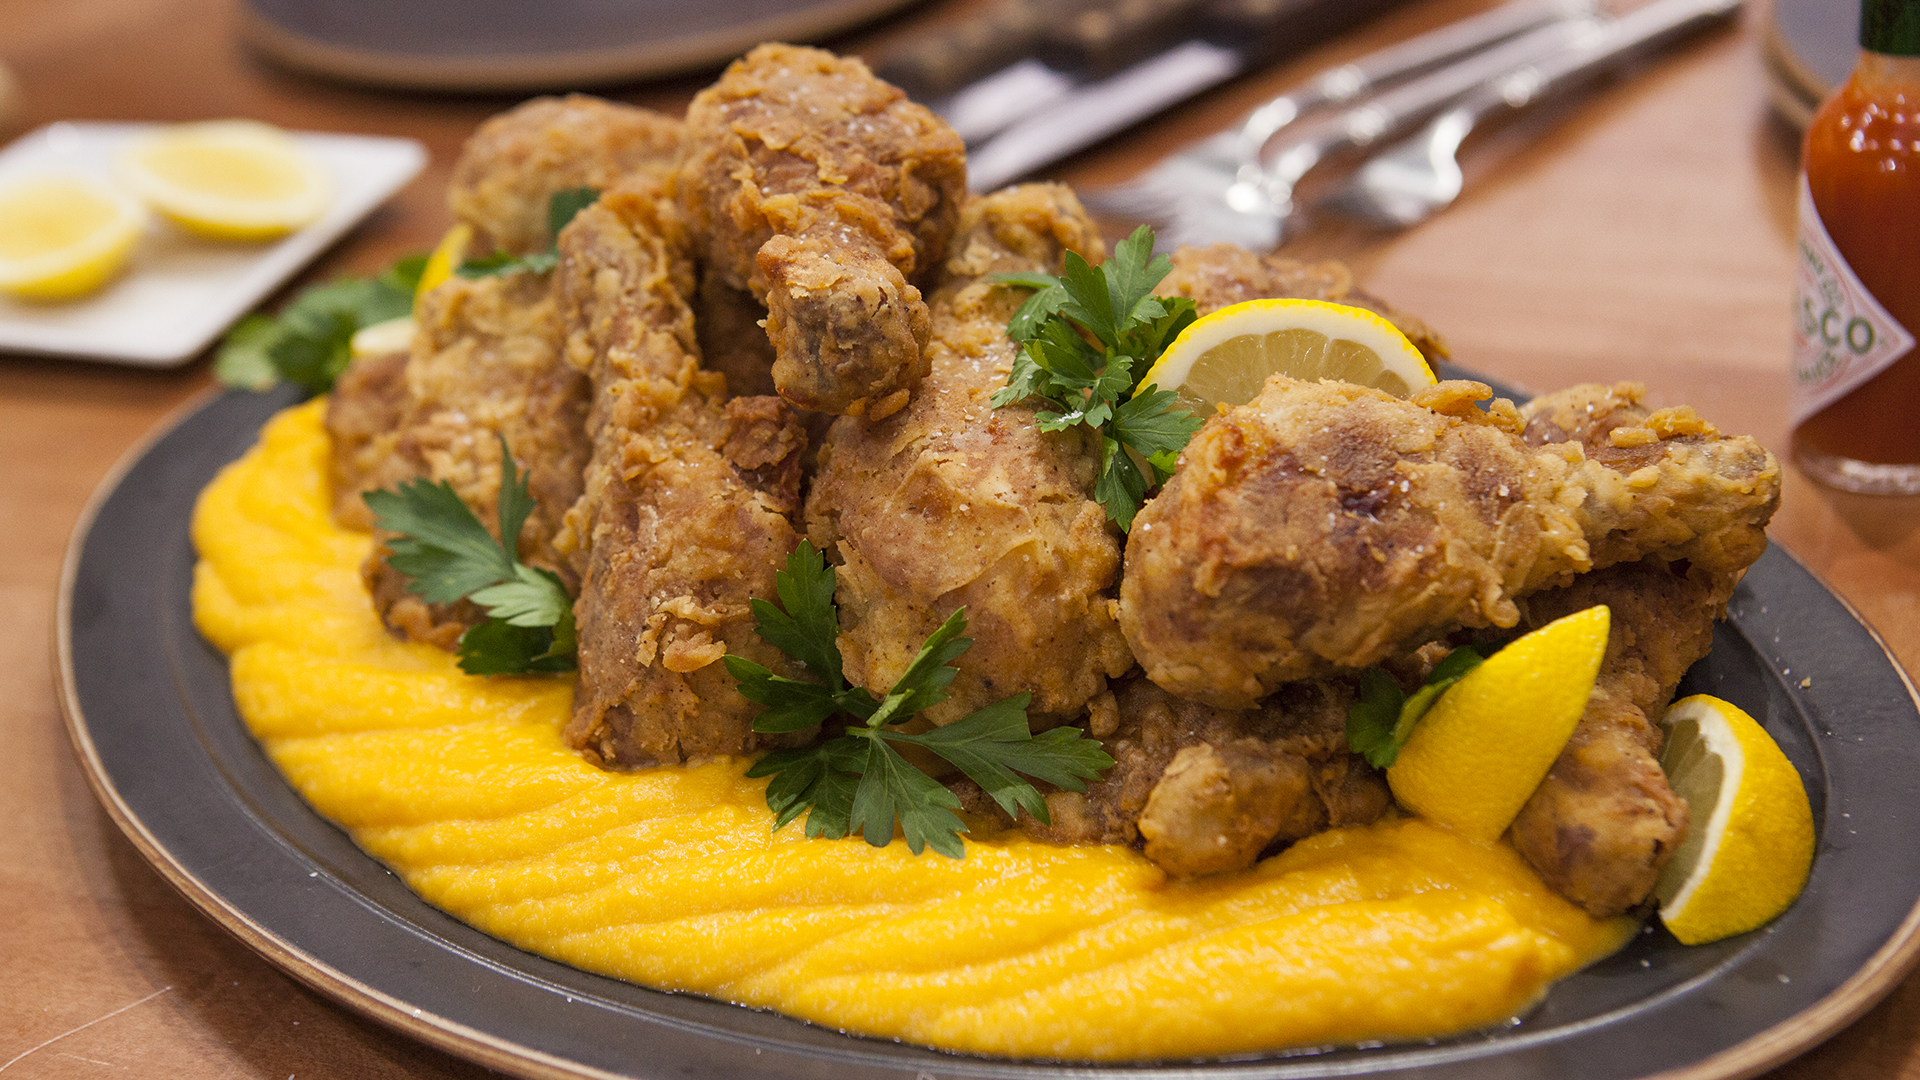 You can make Thomas Keller's Ad Hoc fried chicken at home. Lemon-brined for 12 hours and seasoned with herbs this is super juicy and perfectly crispy fried chicken. Although it takes time to prepare, it's totally worth it.